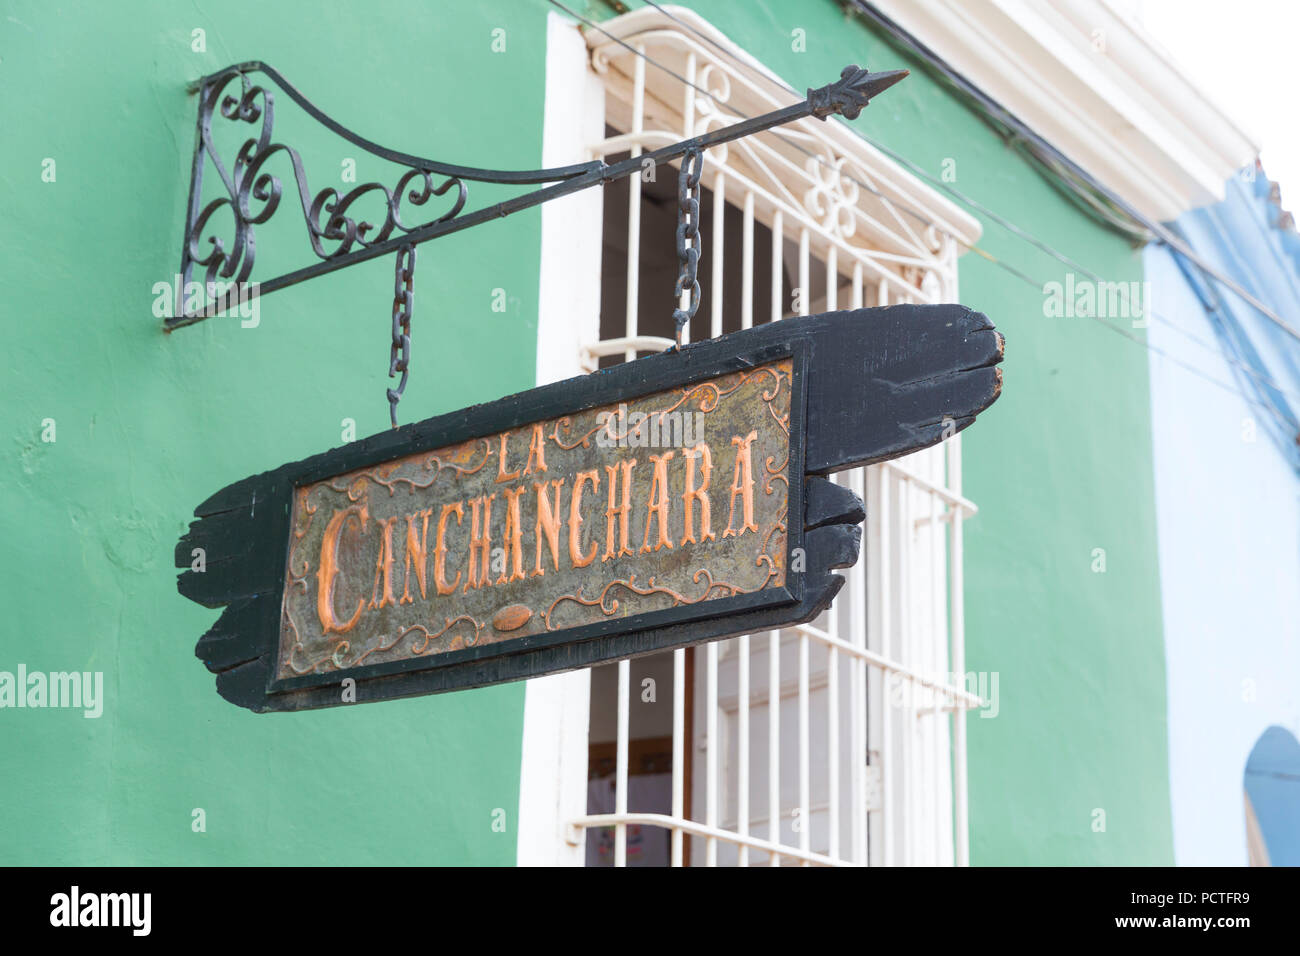 La Canchanchara sign, Cocktail Bar, Trinidad, Sancti Spiritus Province, Cuba, Cuba, Greater Antilles, Caribbean Stock Photo